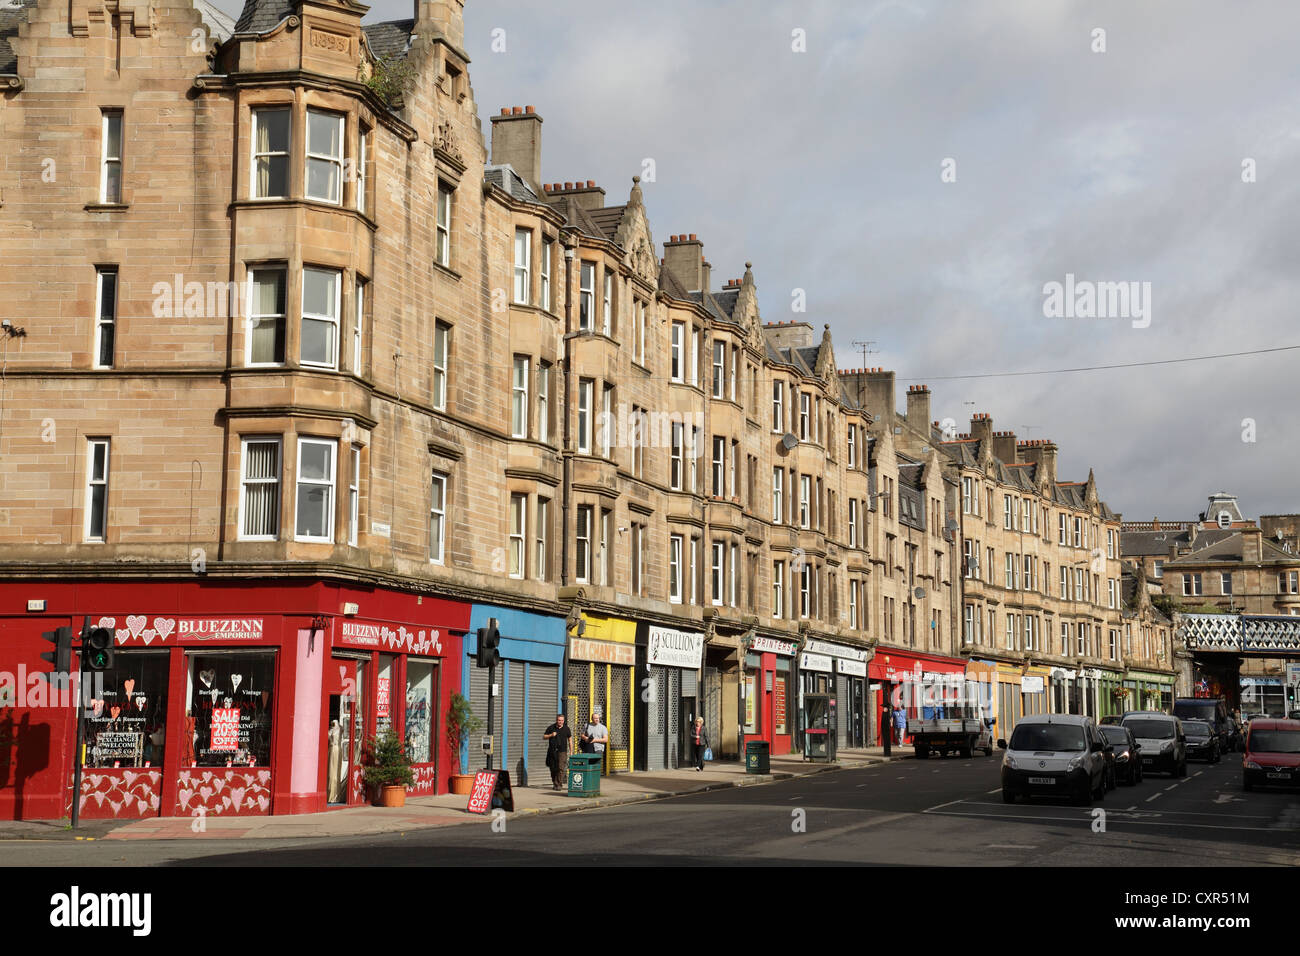 Saltmarket in Glasgow's Merchant City, Scotland, UK - Stock Image